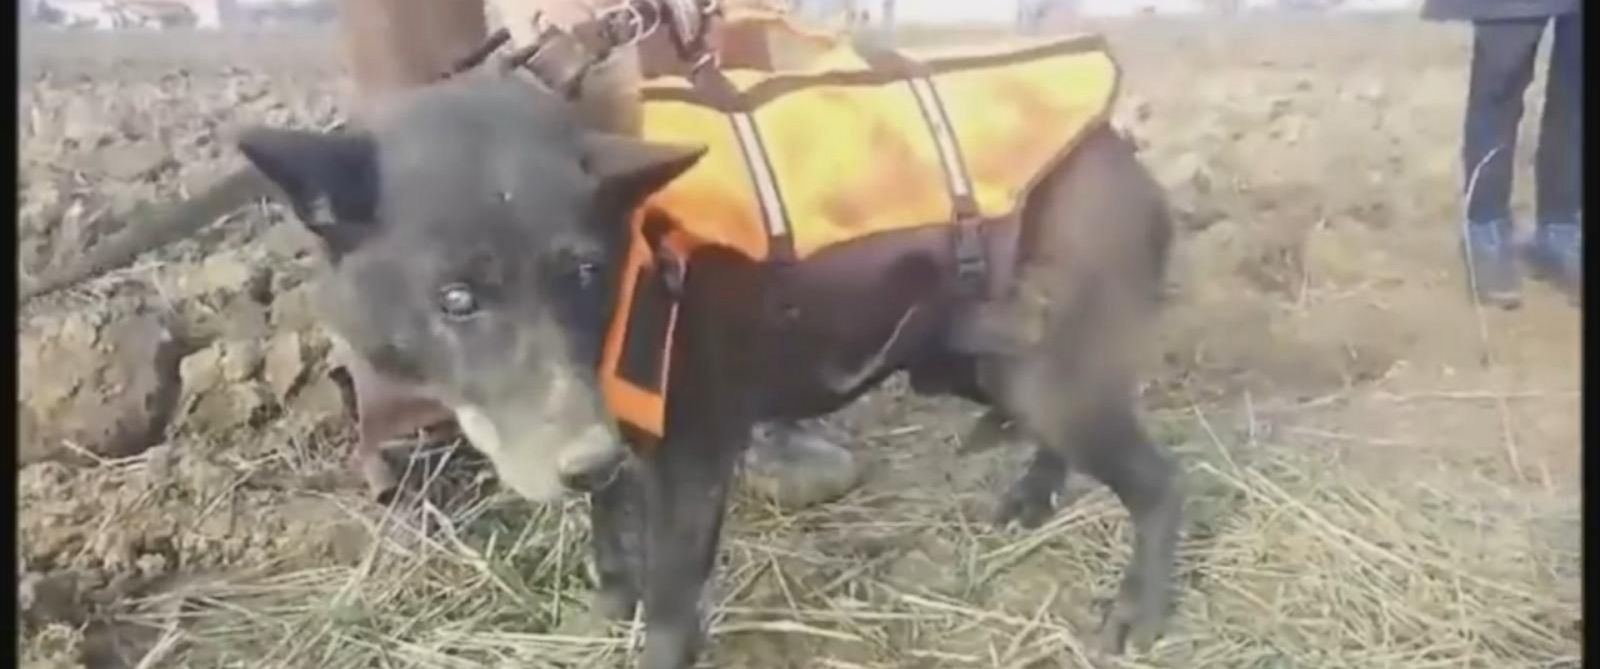 PHOTO: Christmas the dog was rescued from a well in Bosnia last week. Christmas was kept alive after local Bosnian children threw food down to him.